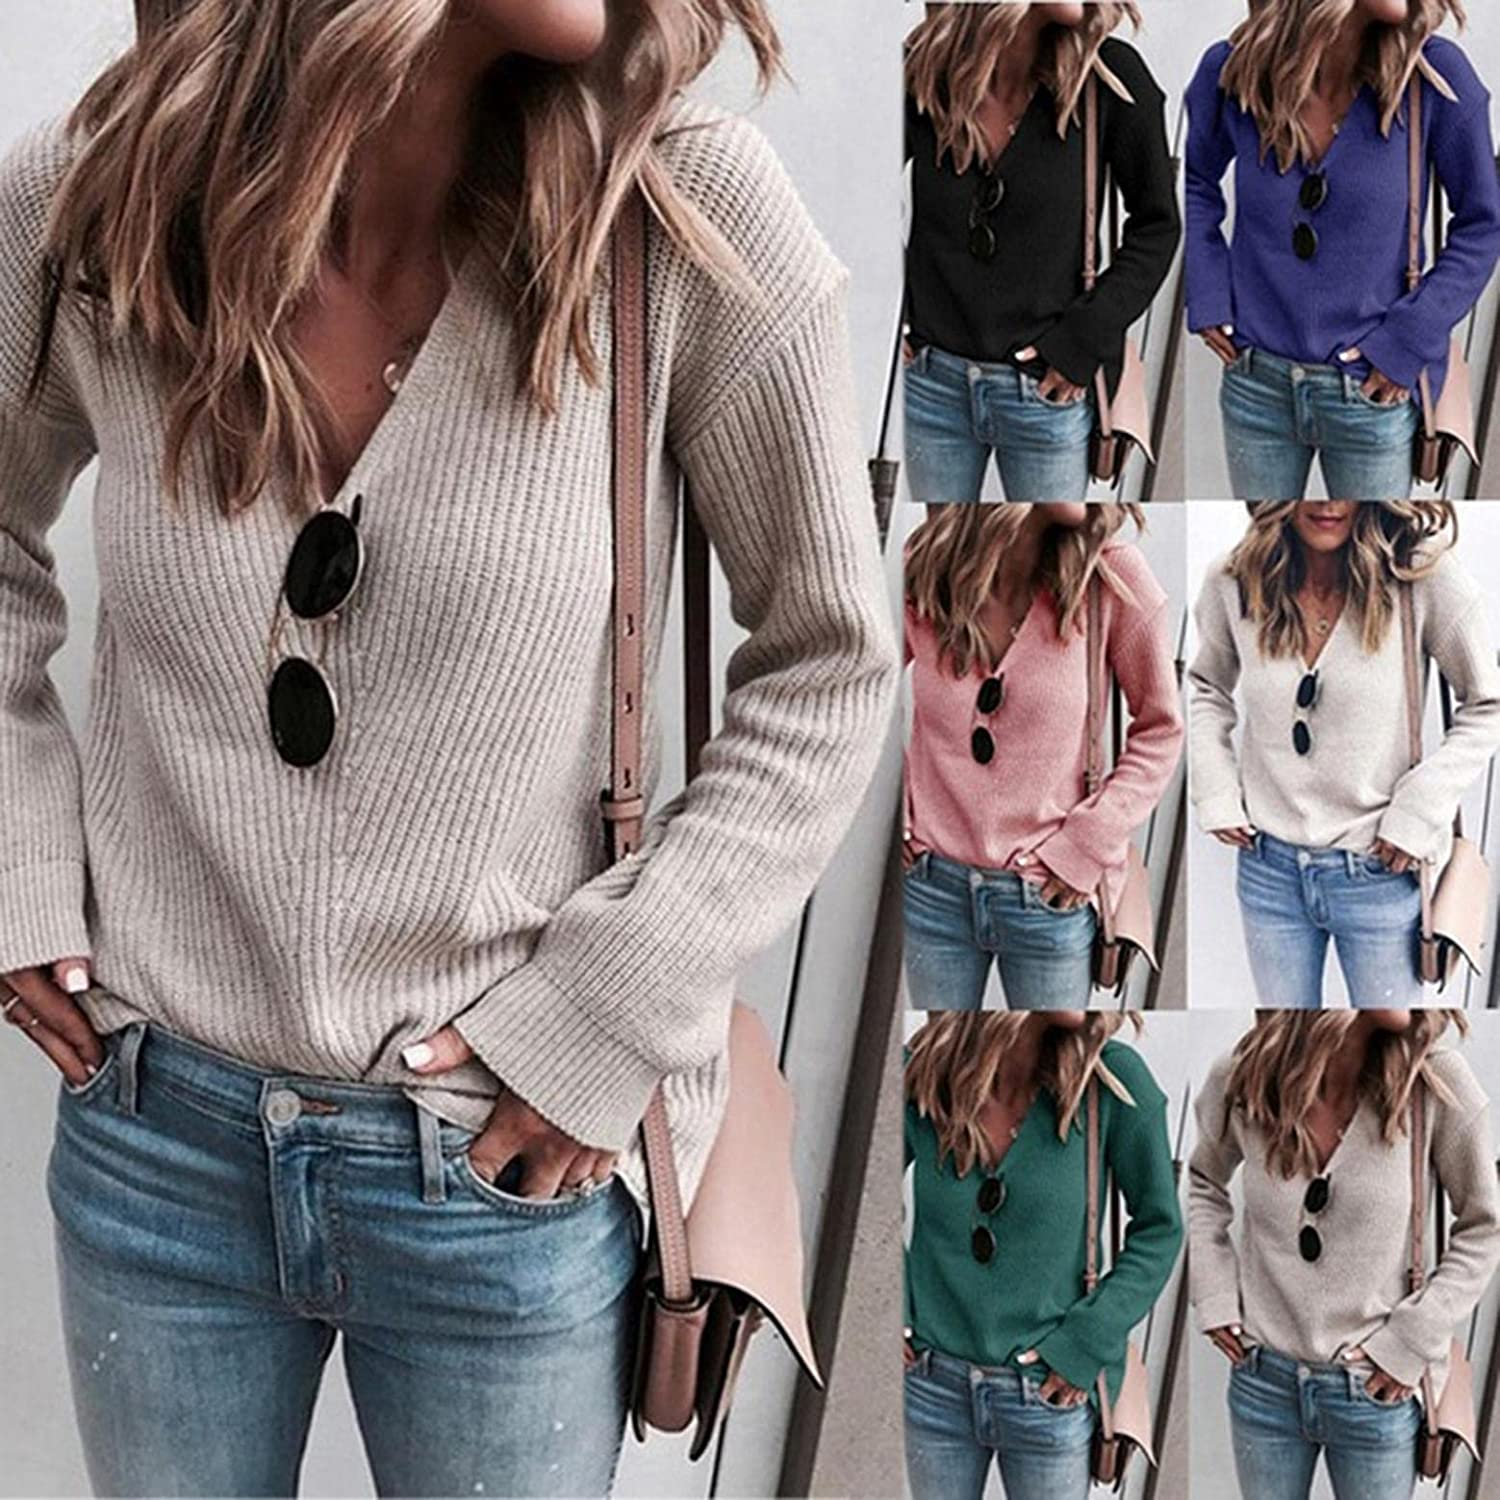 Sweaters for Women Oversized Casual Long Sleeve V Neck Sweatshirts Loose Blouses Chunky Knitted Pullover Sweaters Tops